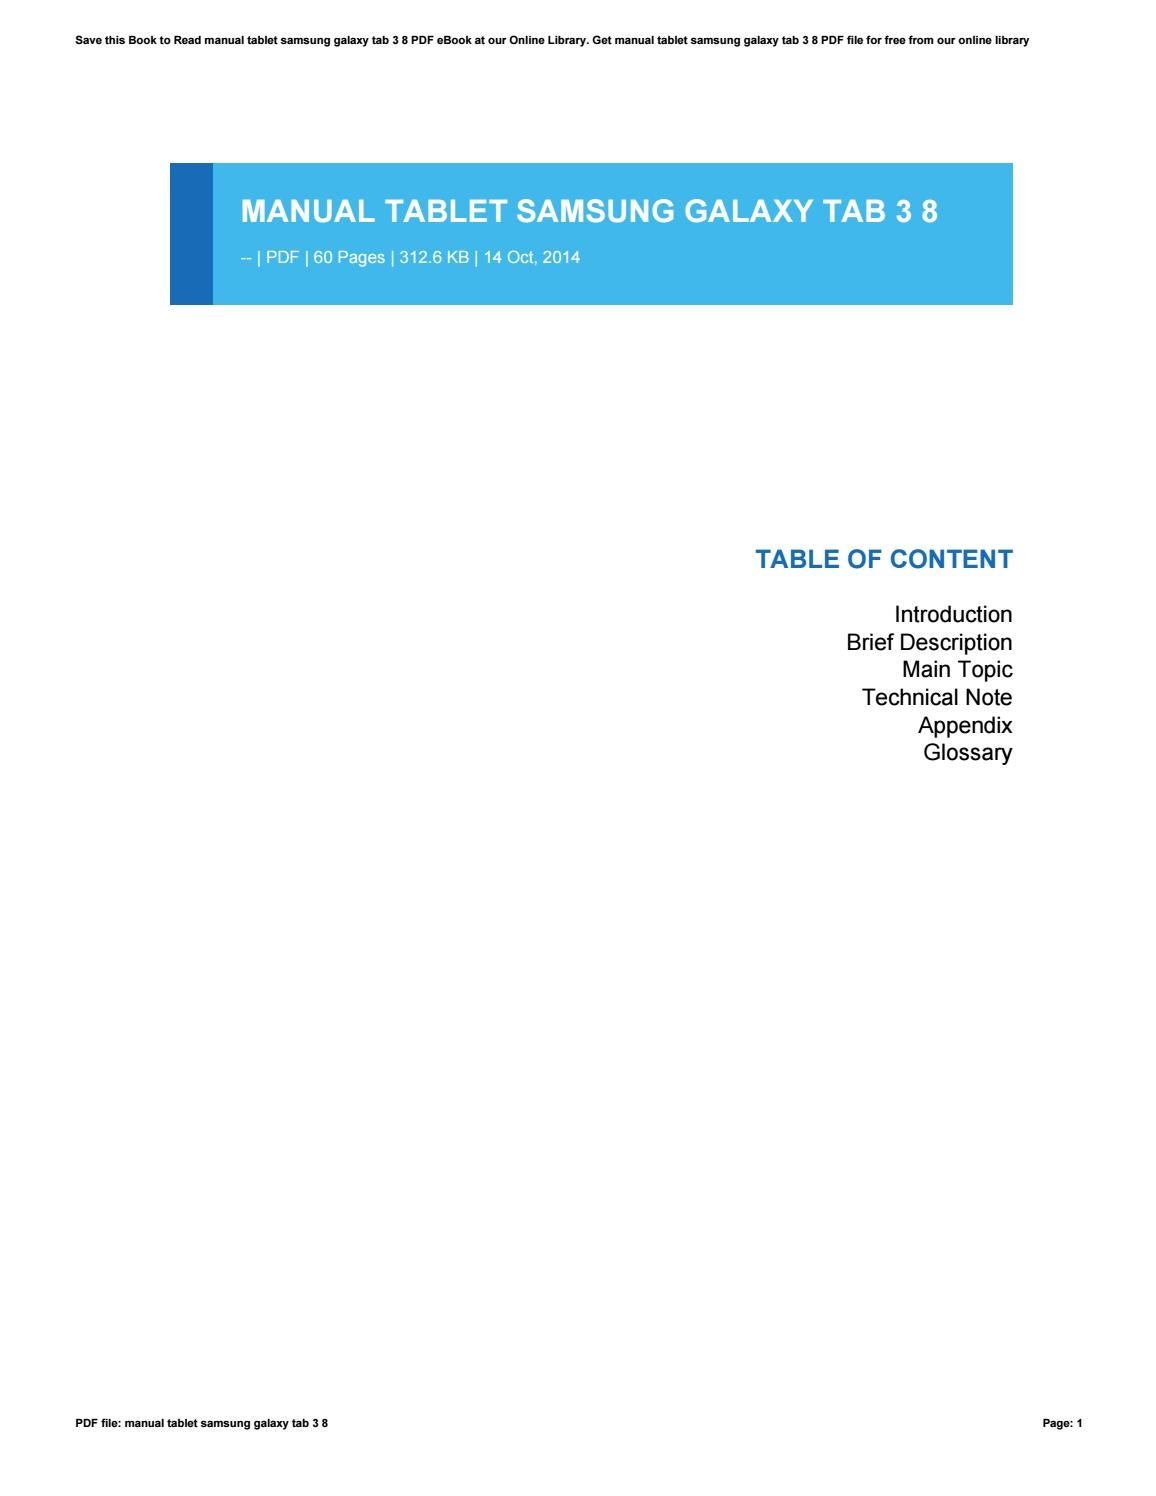 samsung manuals for tablets ebook